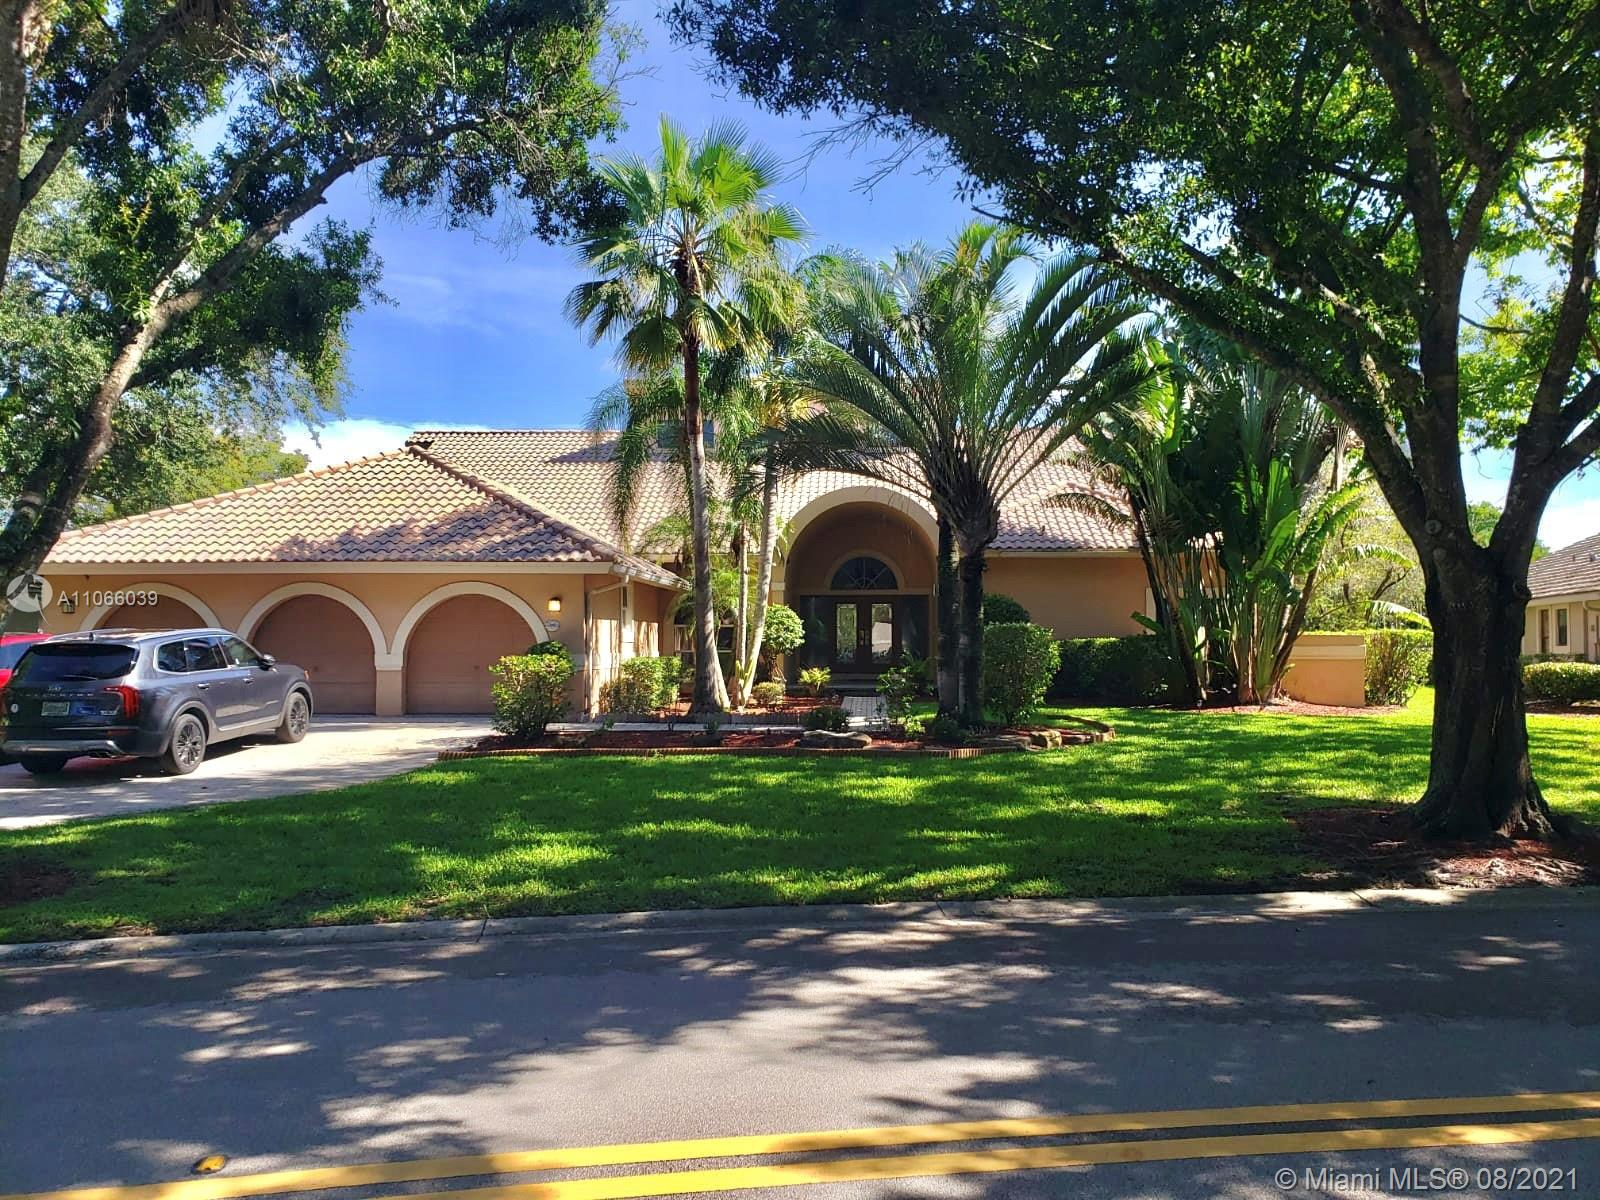 12049 Eagle Trace Blvd N, Coral Springs, Florida 33071